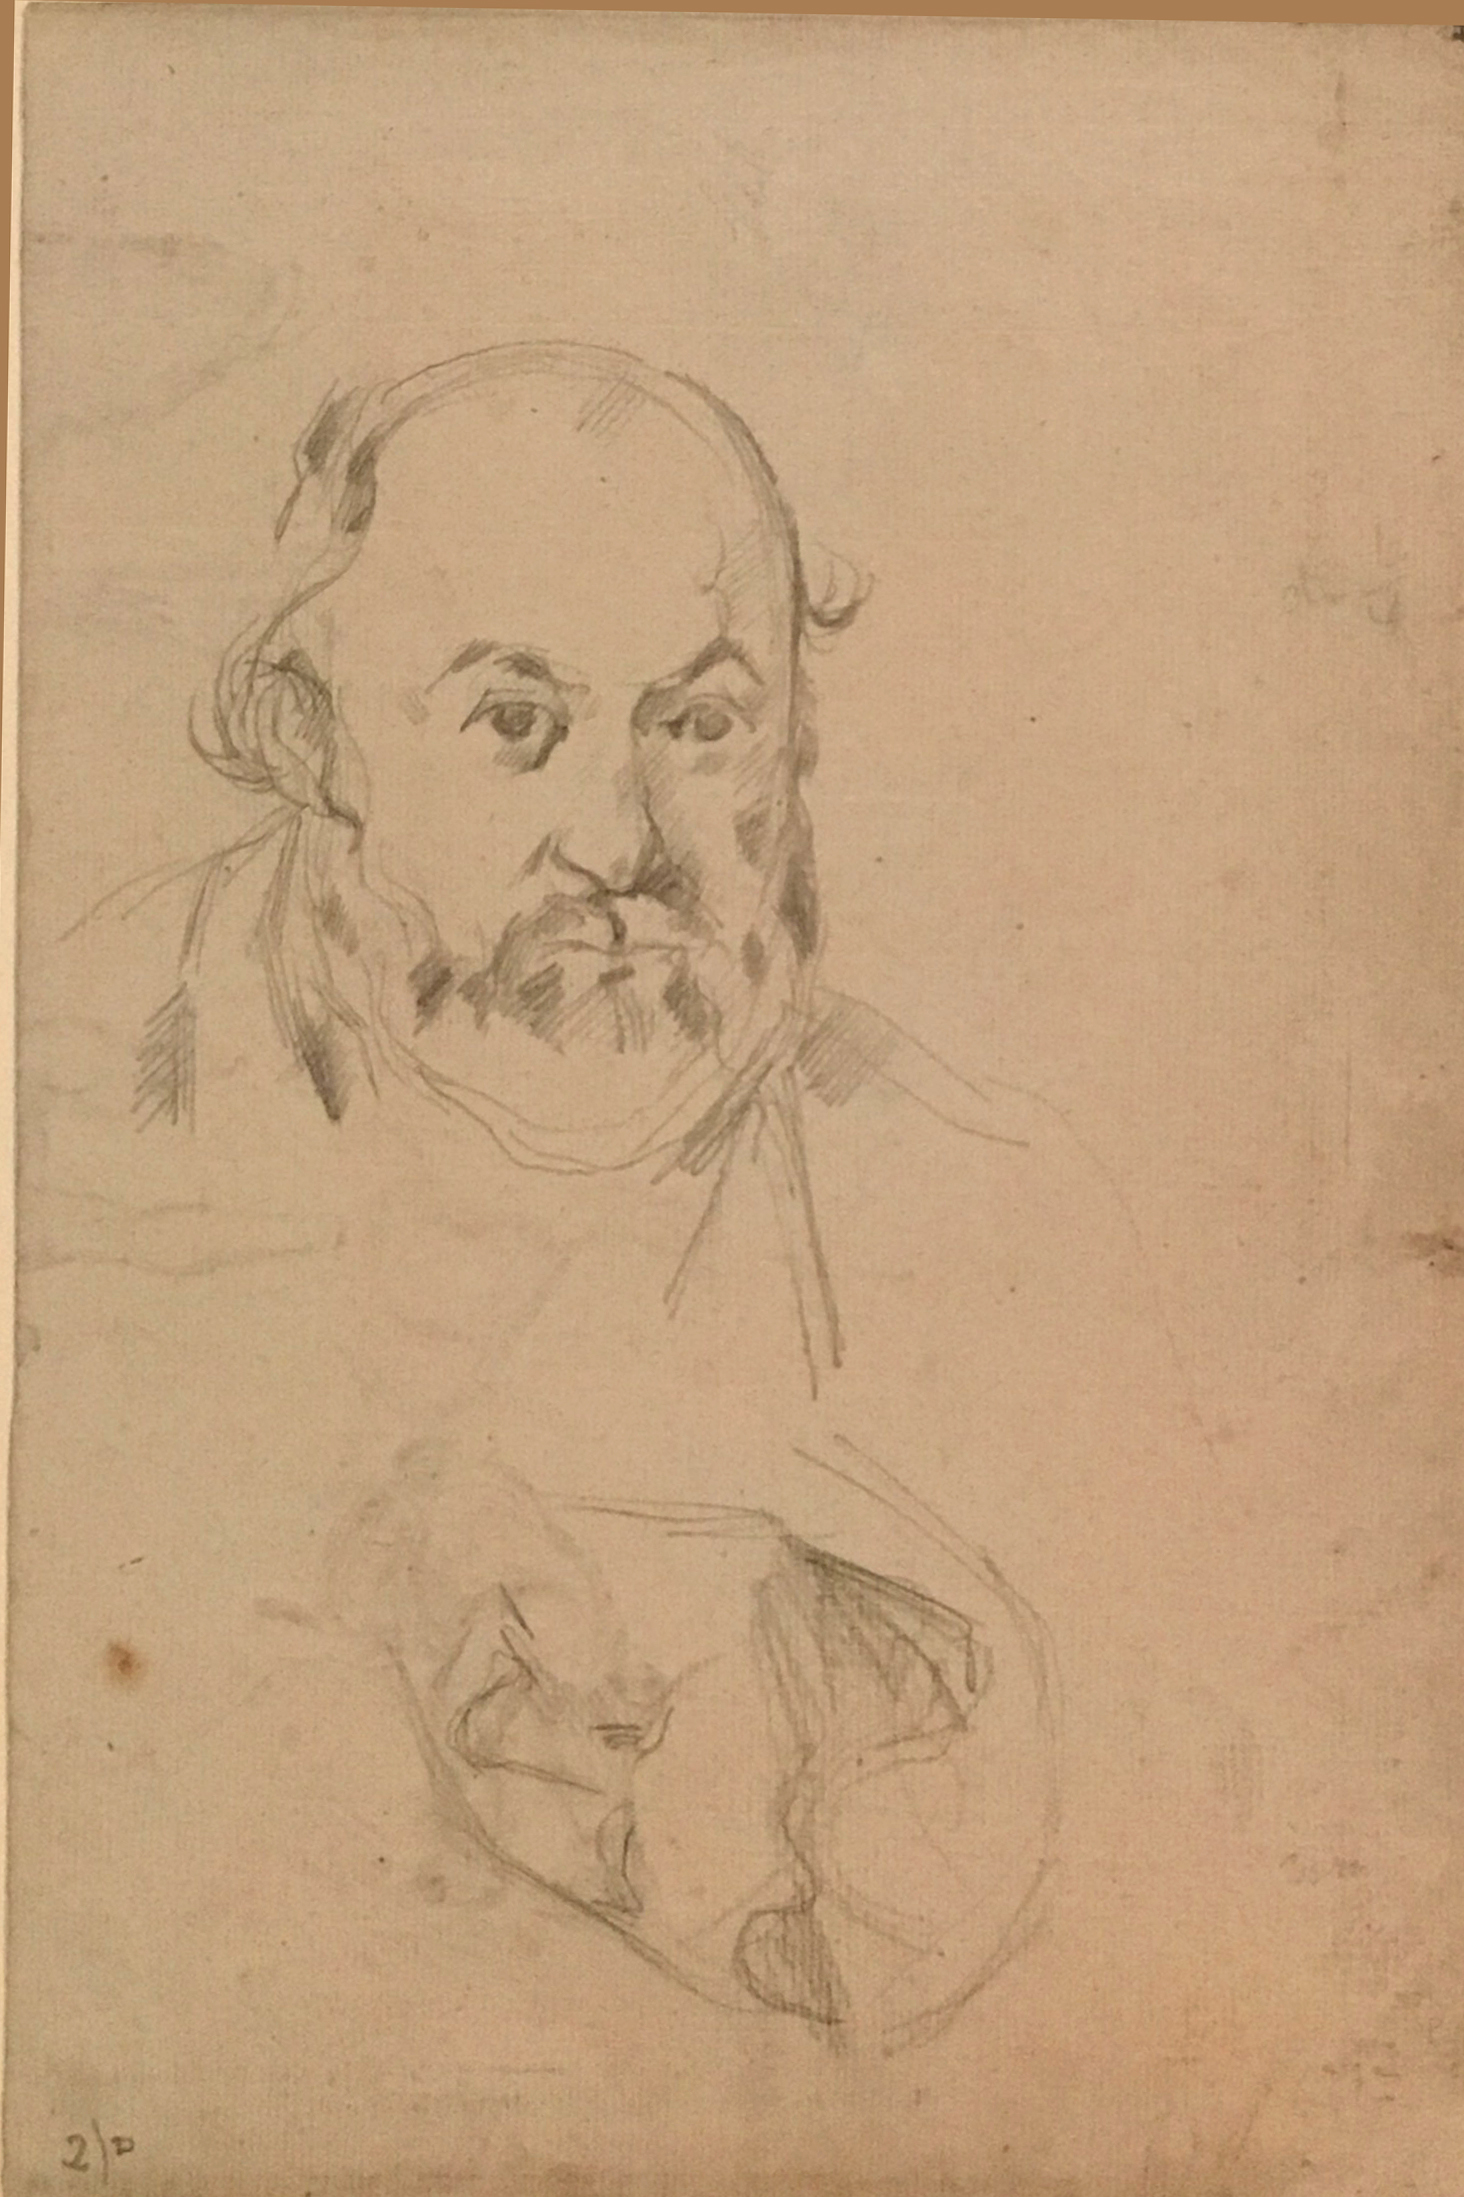 Self-Portrait, P. Cézanne, c. 1880, pencil on paper, Kunstmuseum Basel